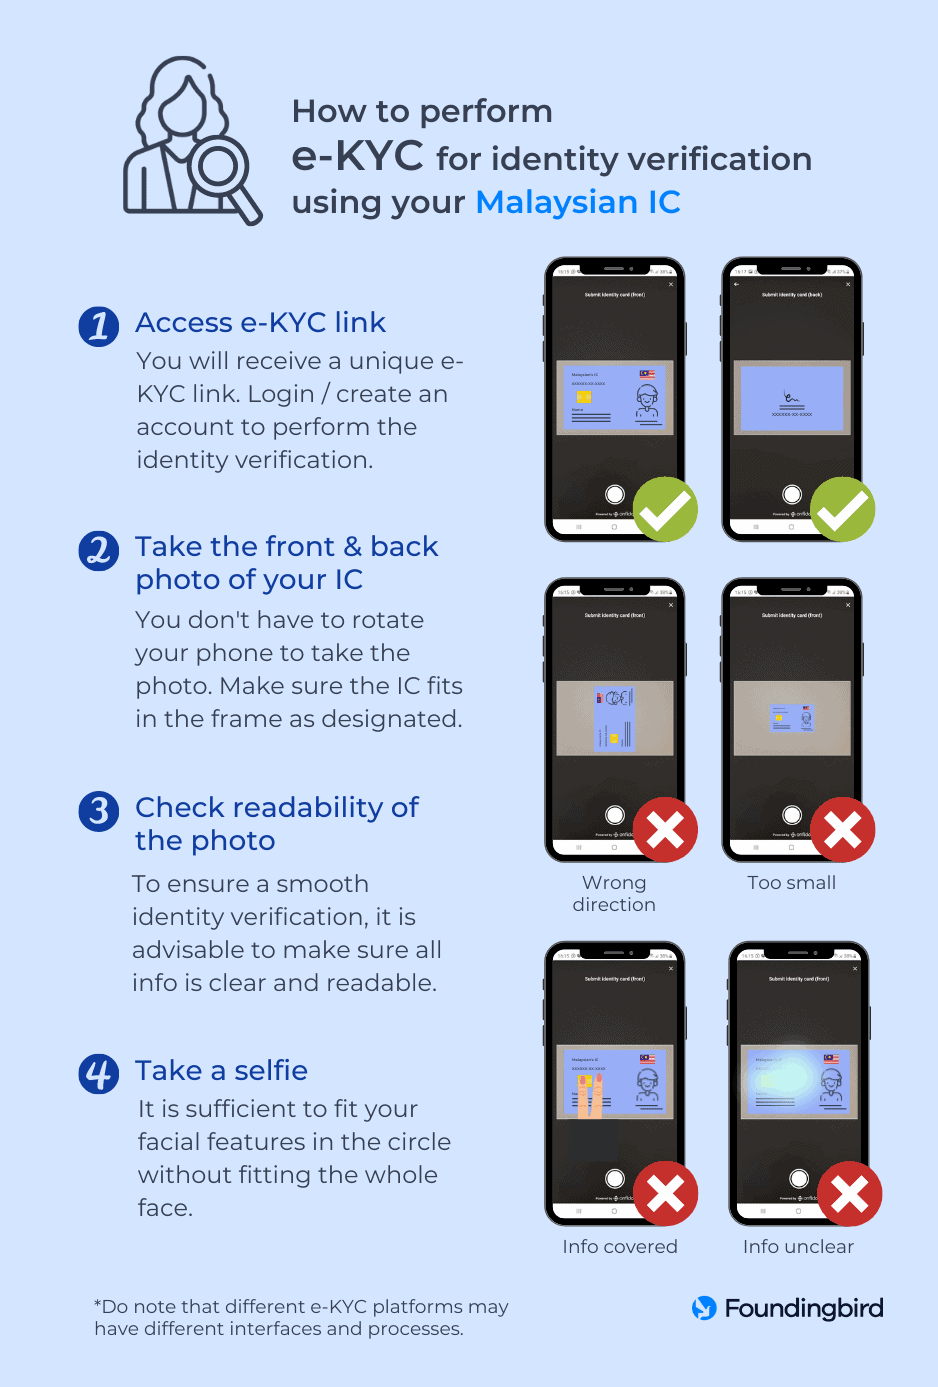 How to perform e-KYC for identity verification using a Malaysian IC - Infographic